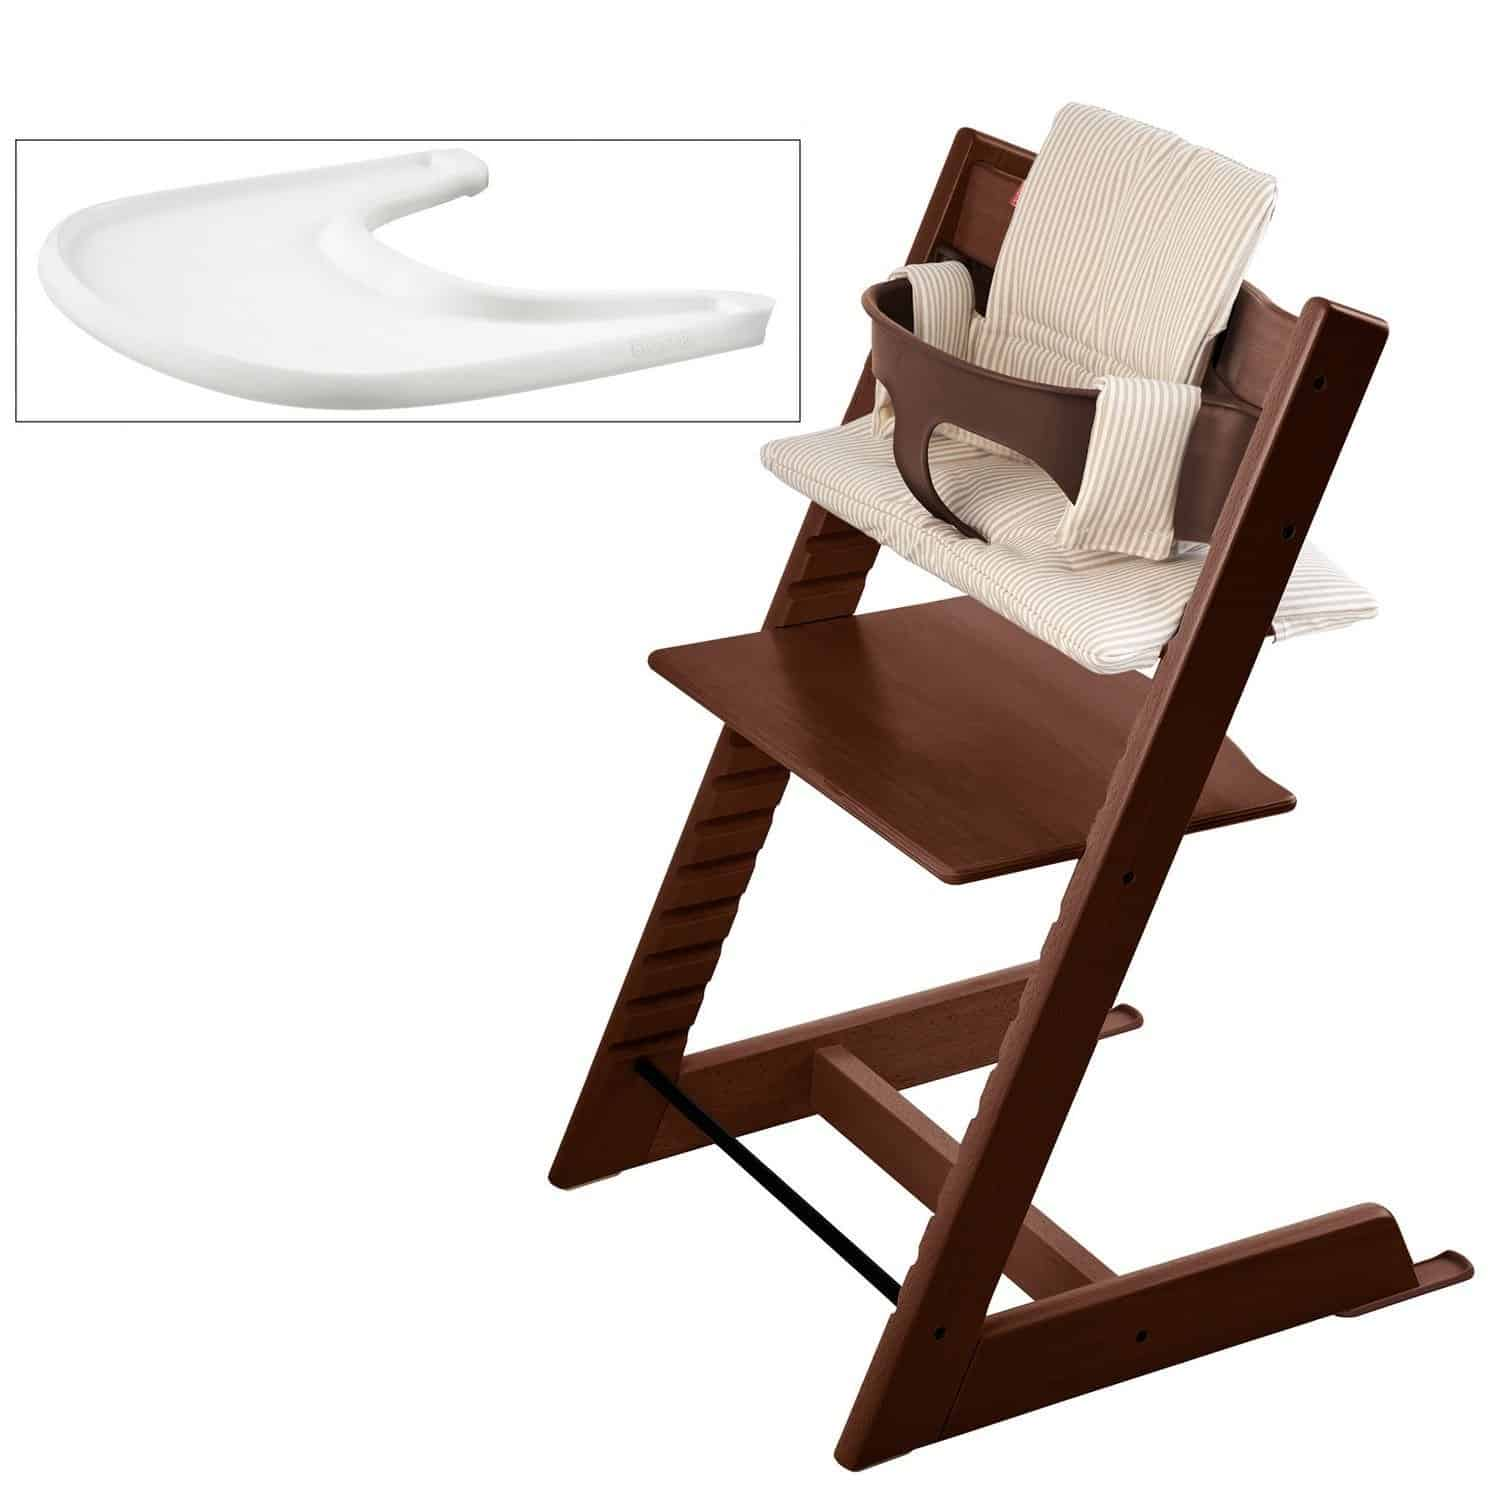 cats stokke cushion high chair trixiebaby en trixie